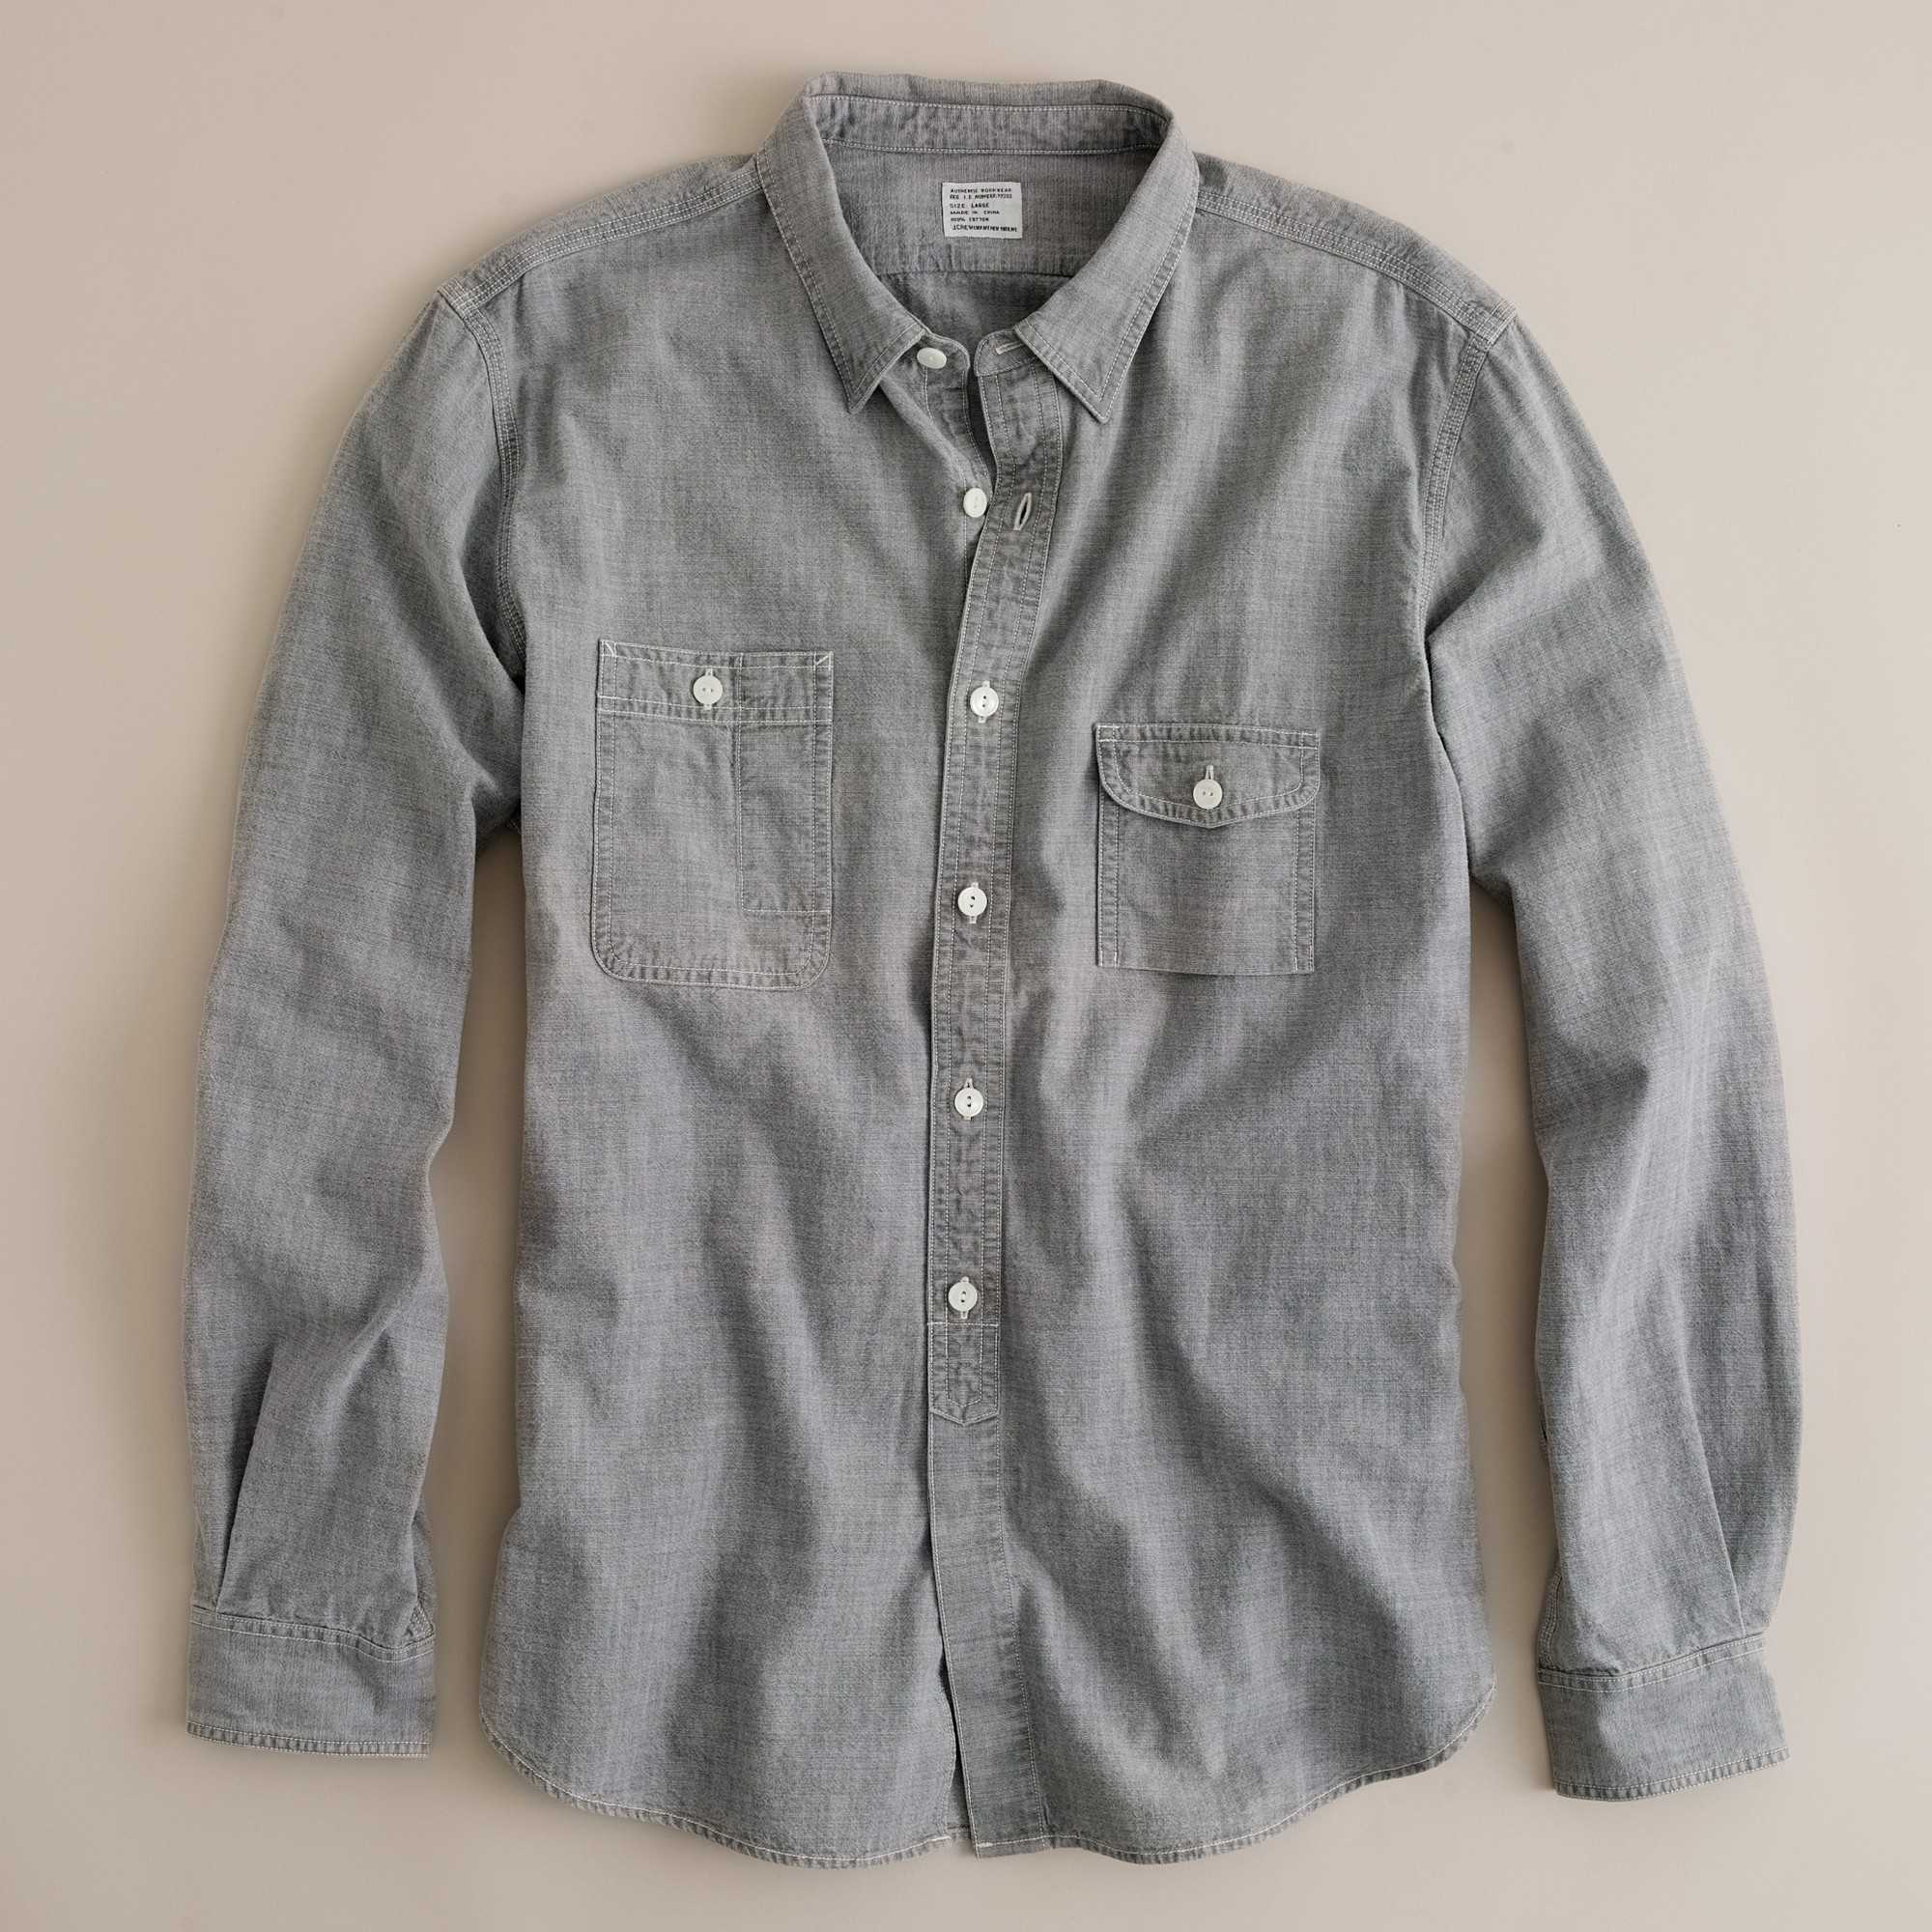 Chambray Shirts For Men